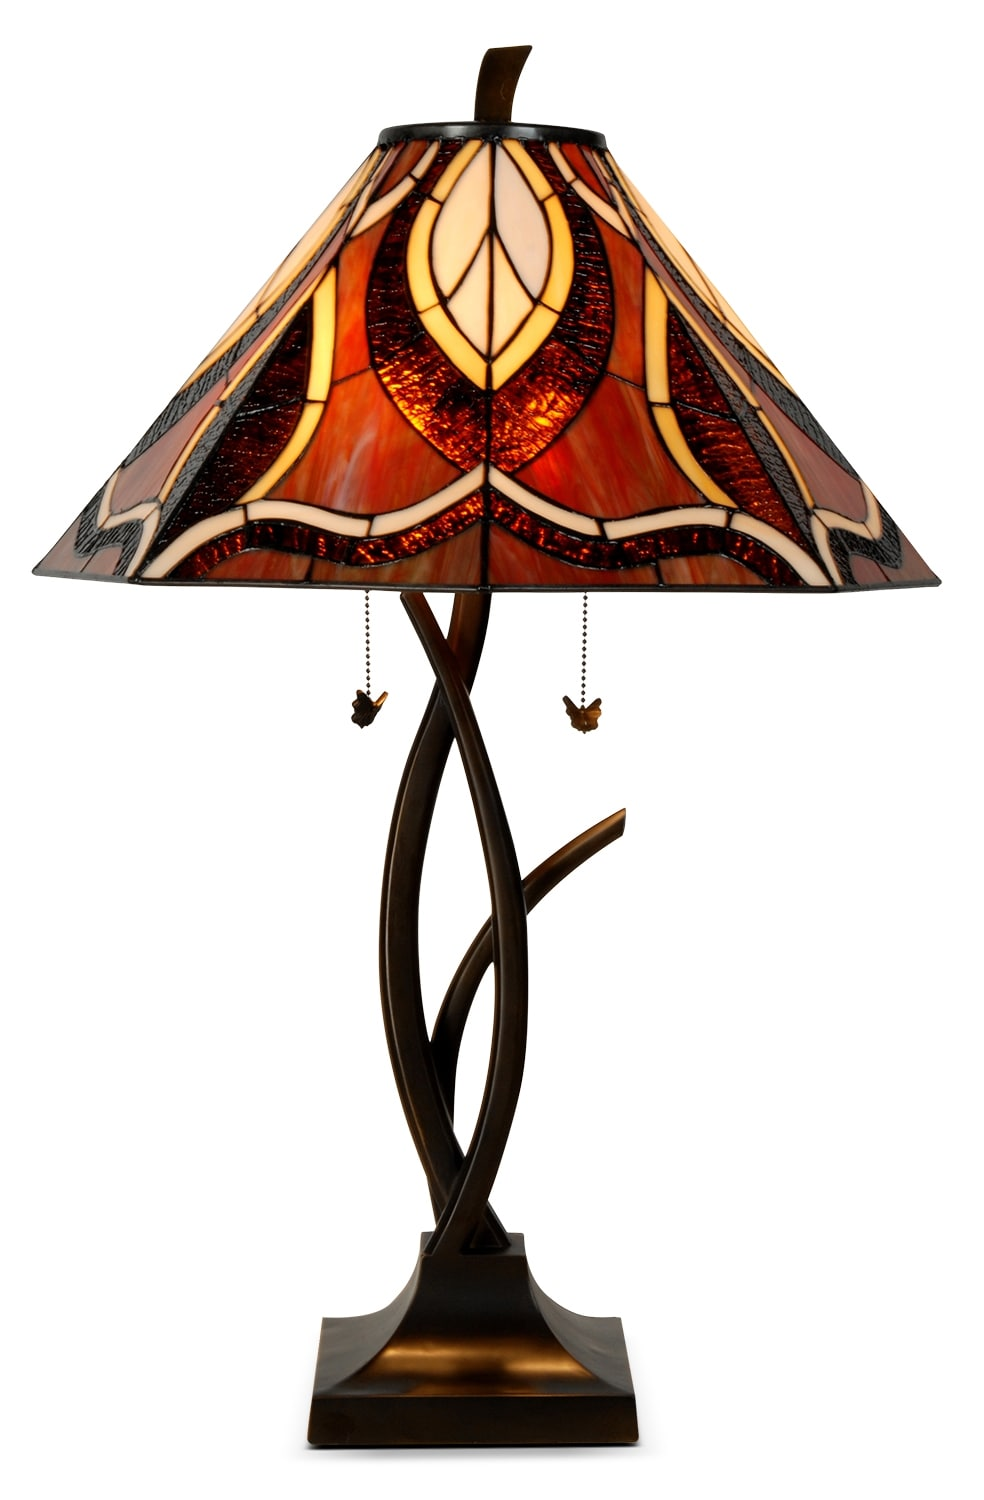 Teslatier Table Lamp with Stained Glass Shade